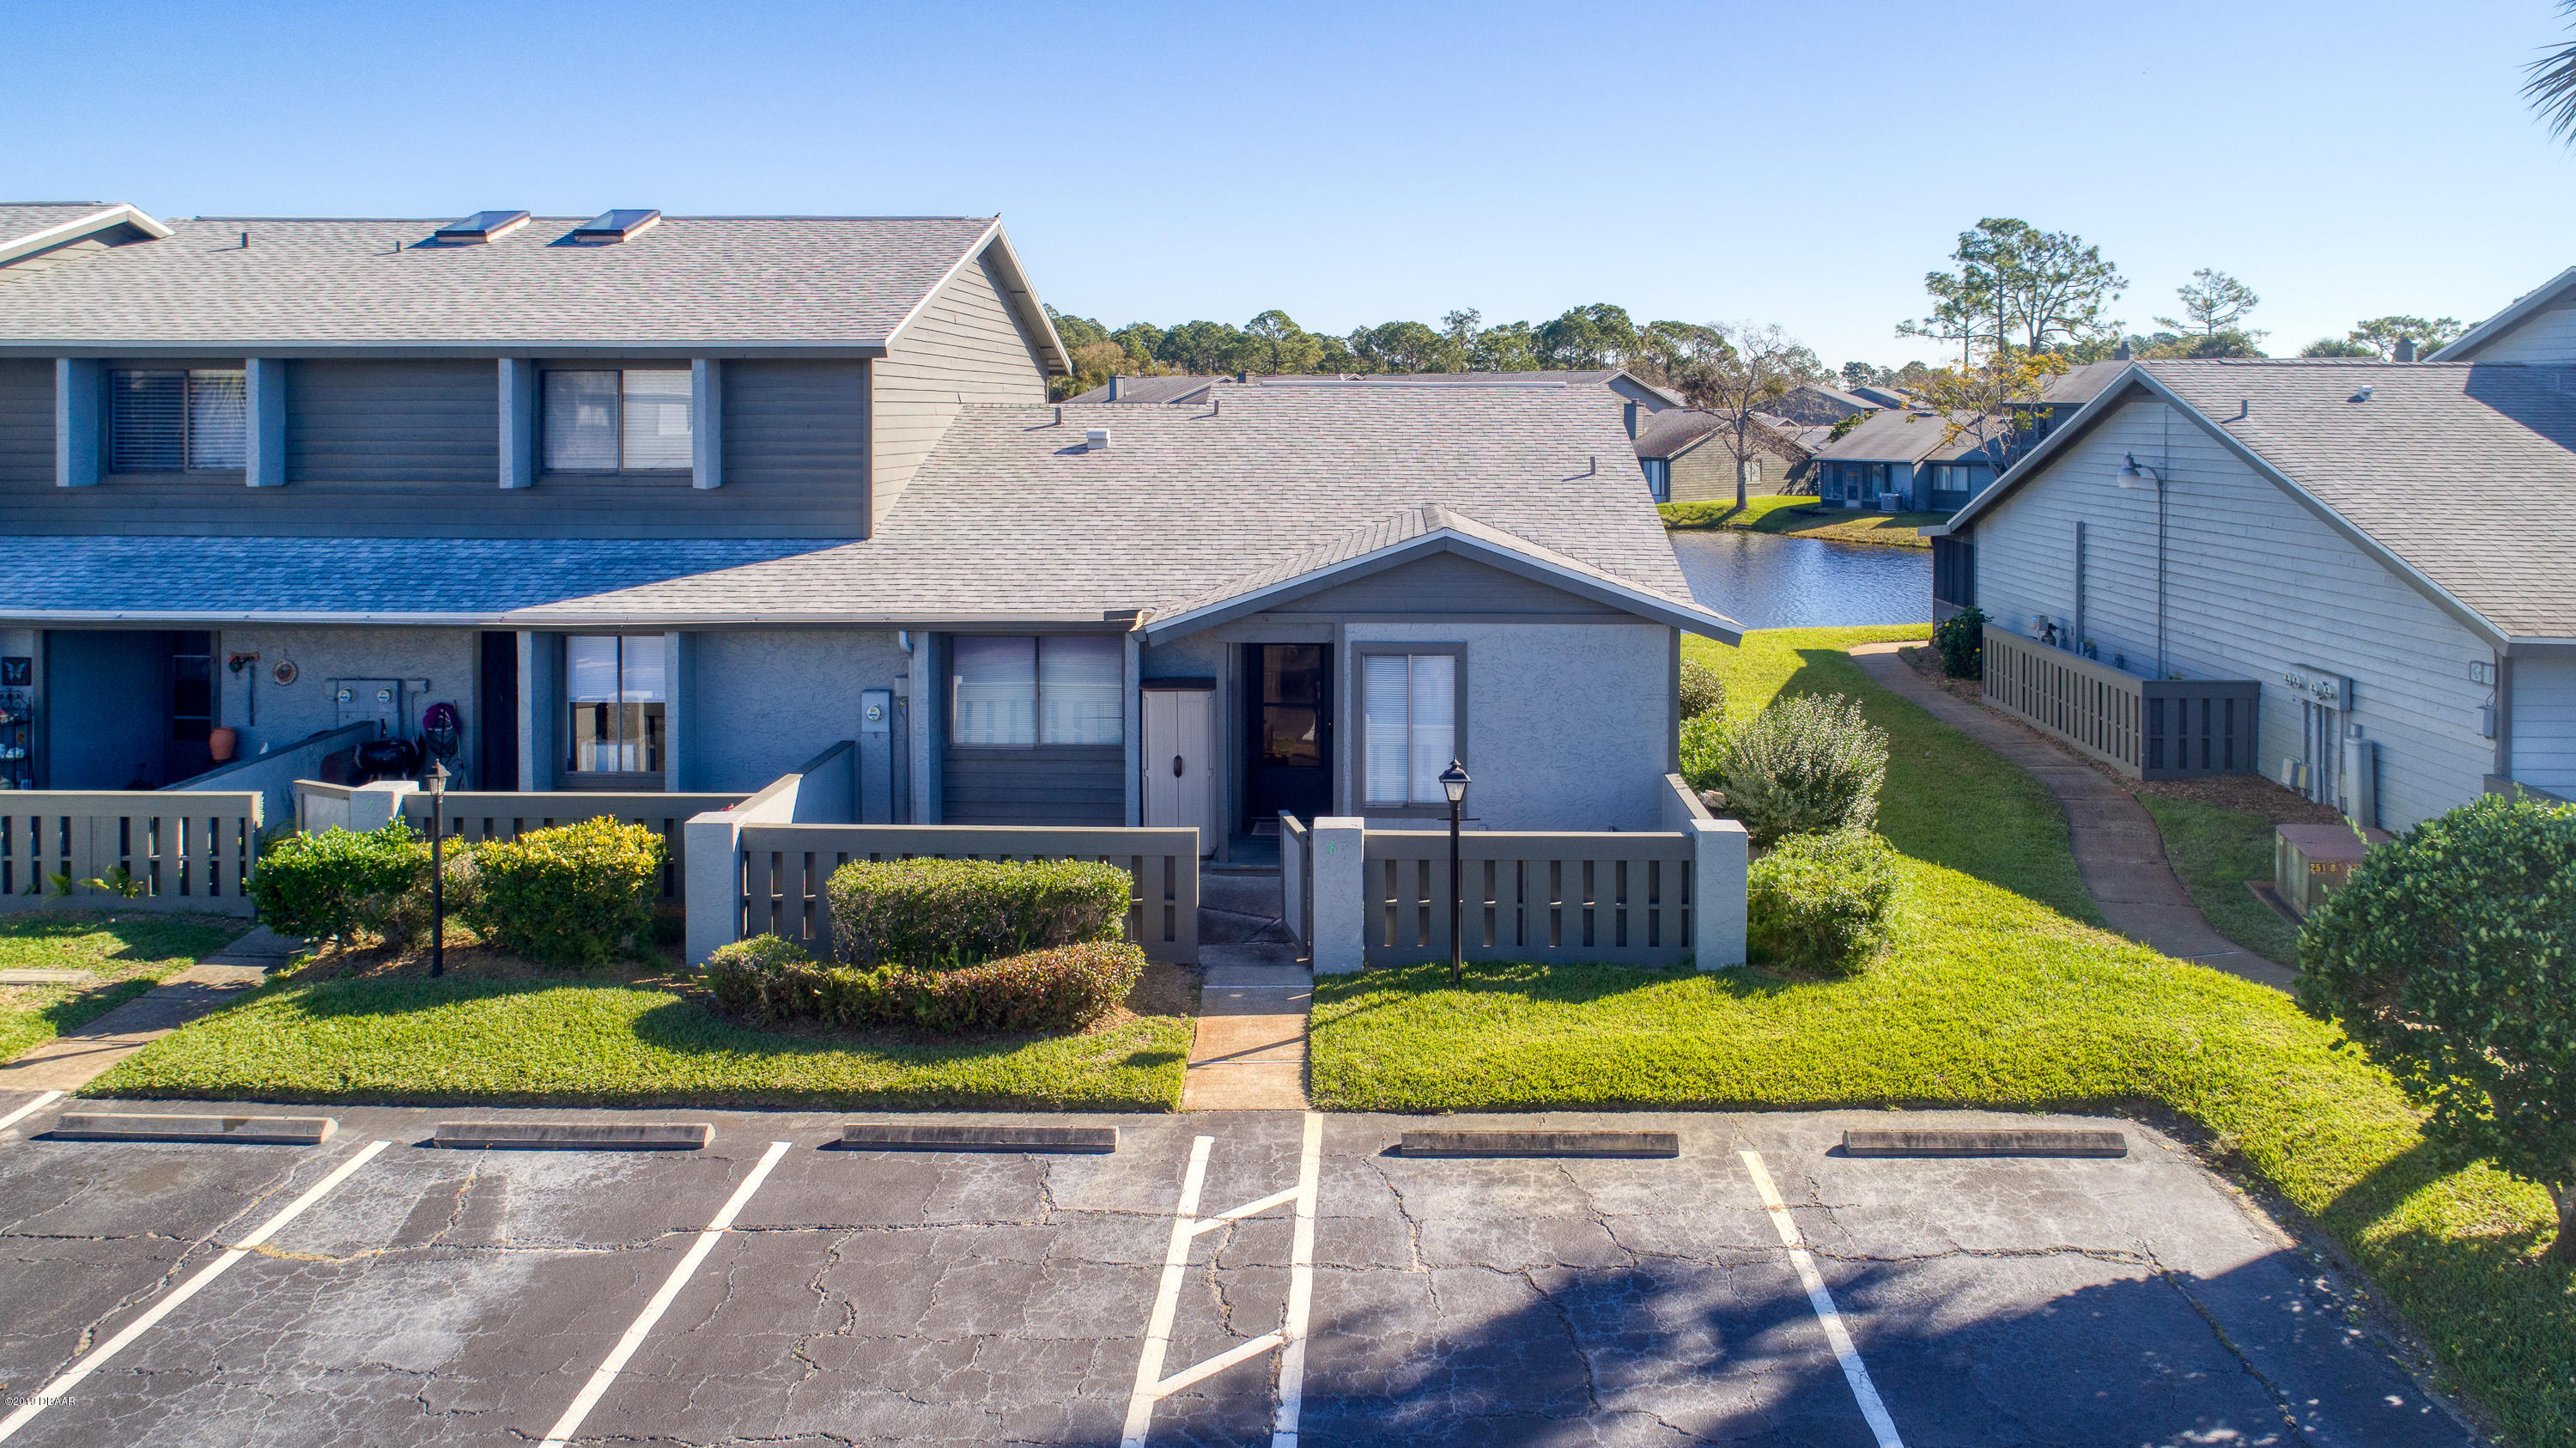 170 Limewood Place 32174 - One of Ormond Beach Homes for Sale